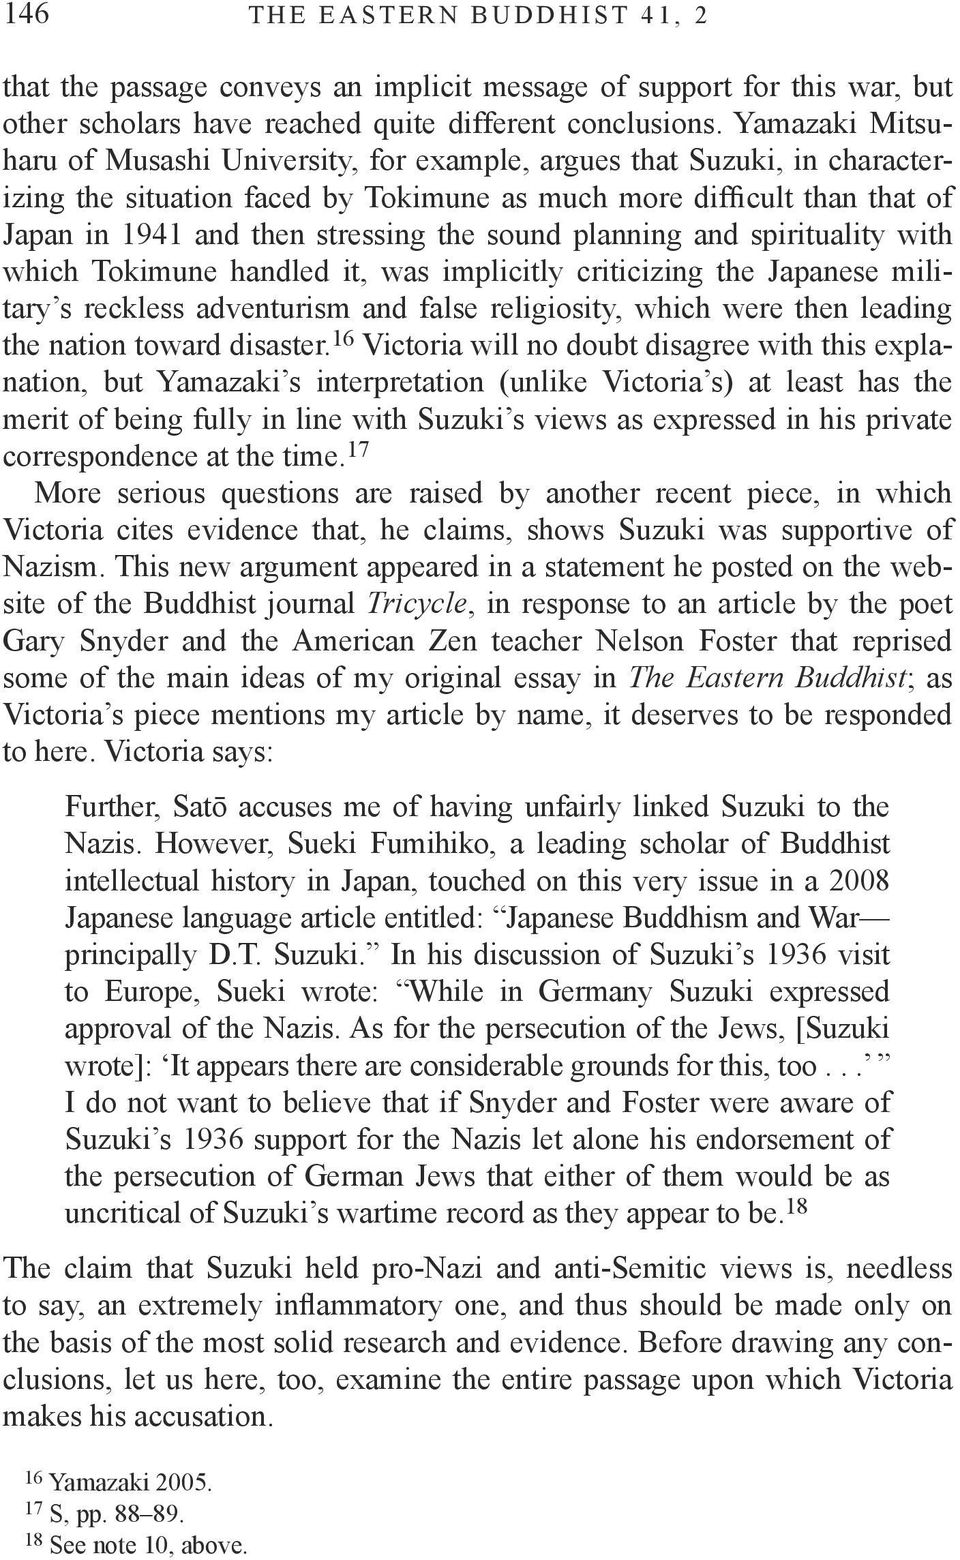 sound planning and spirituality with which Tokimune handled it, was implicitly criticizing the Japanese military s reckless adventurism and false religiosity, which were then leading the nation